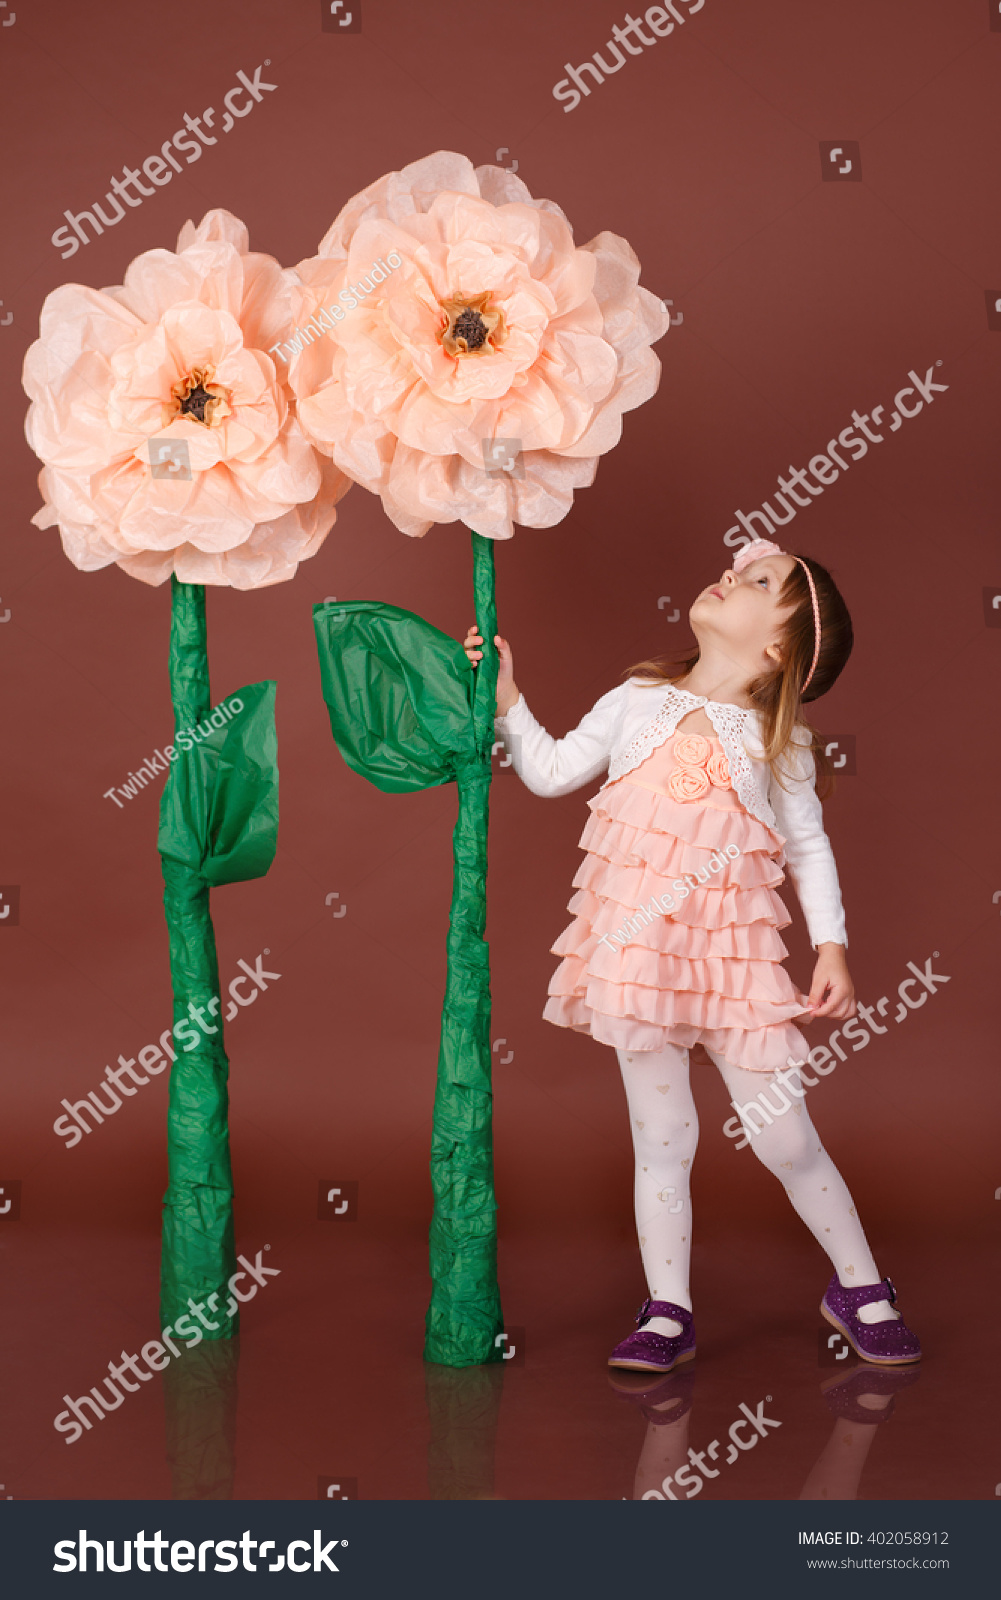 Girl Holding Huge Flower Looking Him Pretty Stock Photo Edit Now